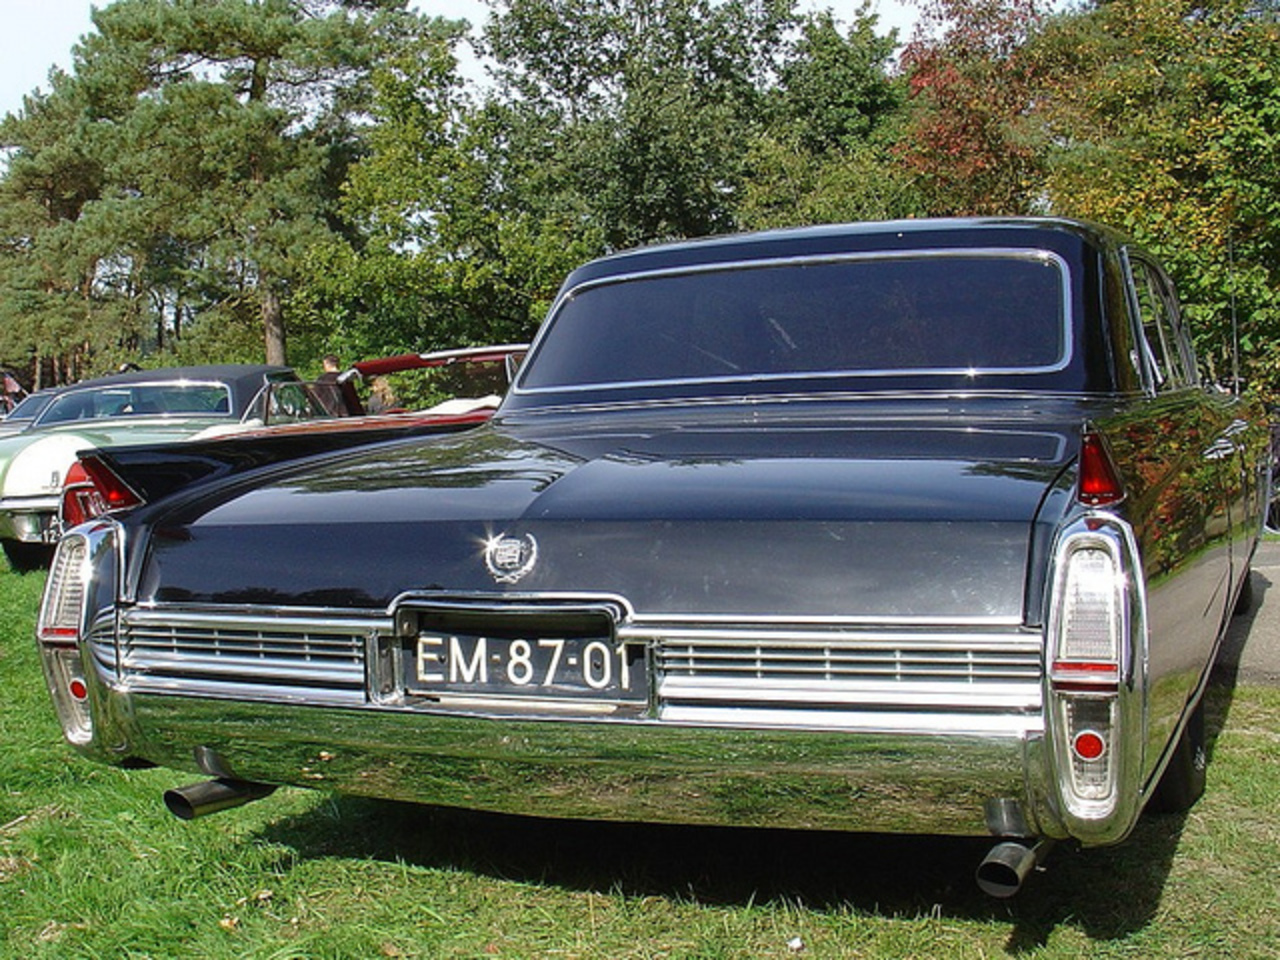 Cadillac Fleetwood 60 Special 1964 | Flickr - Photo Sharing!